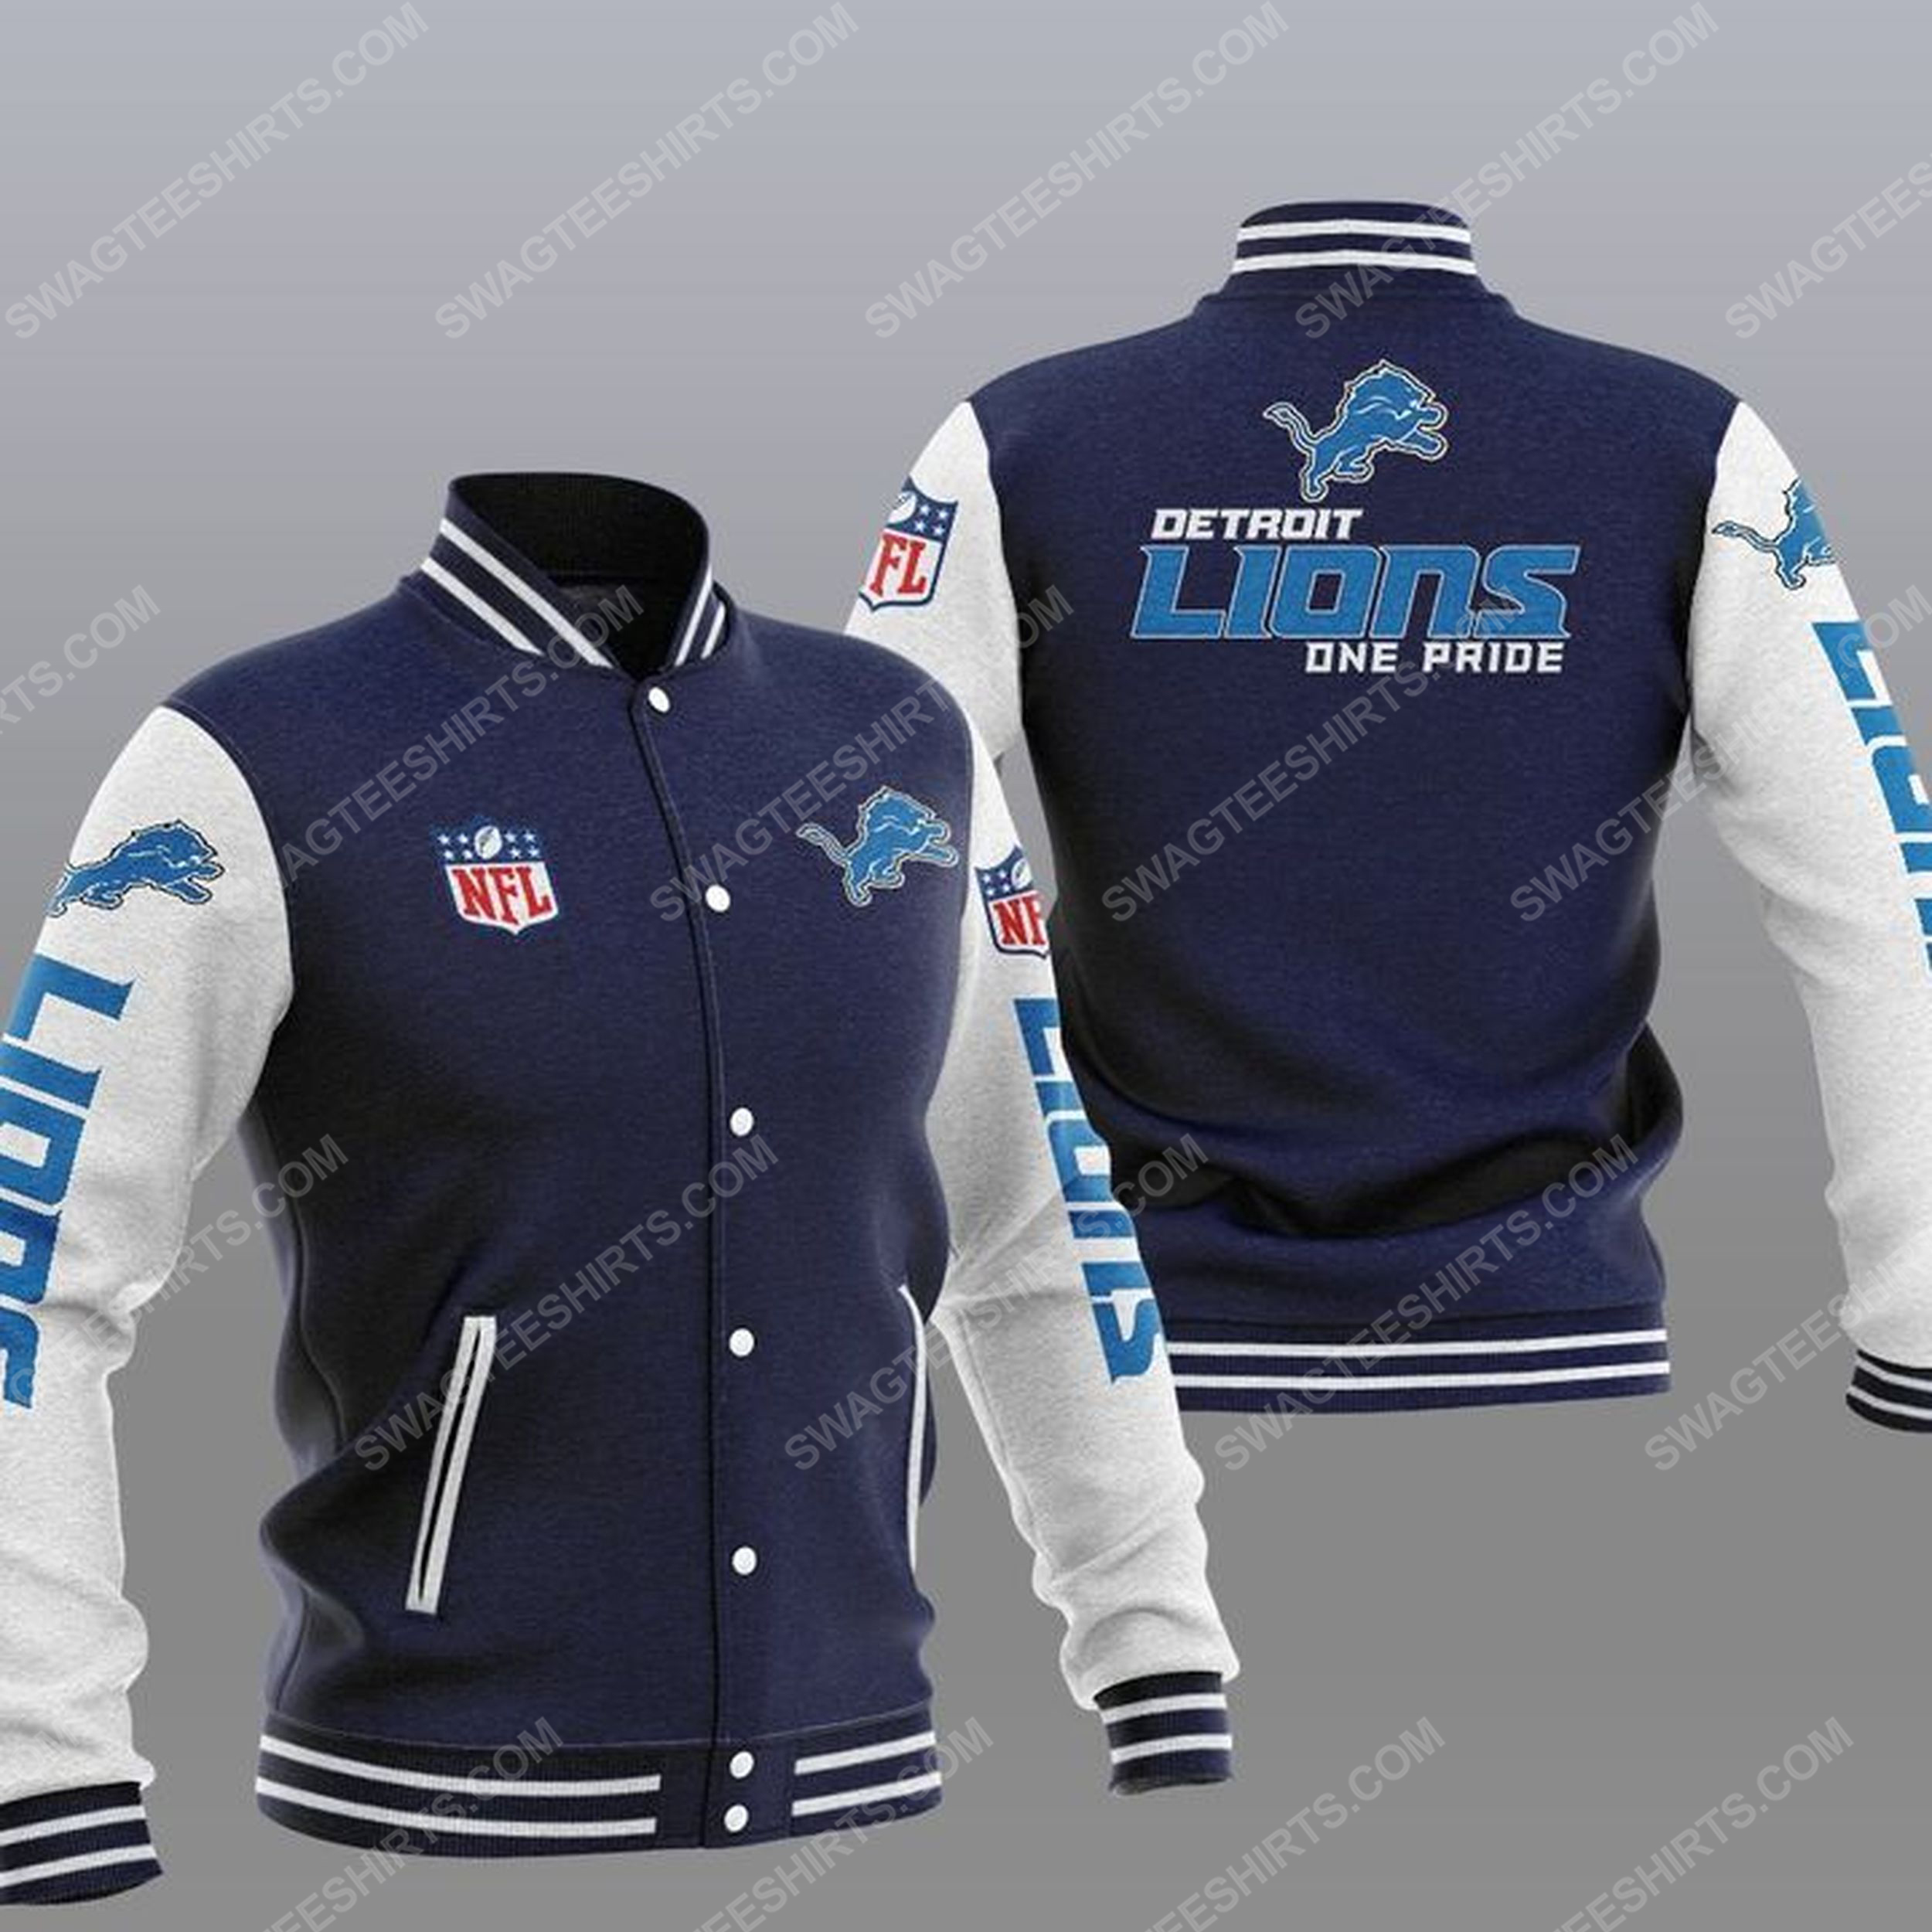 Detroit lions one pride all over print baseball jacket - navy 1